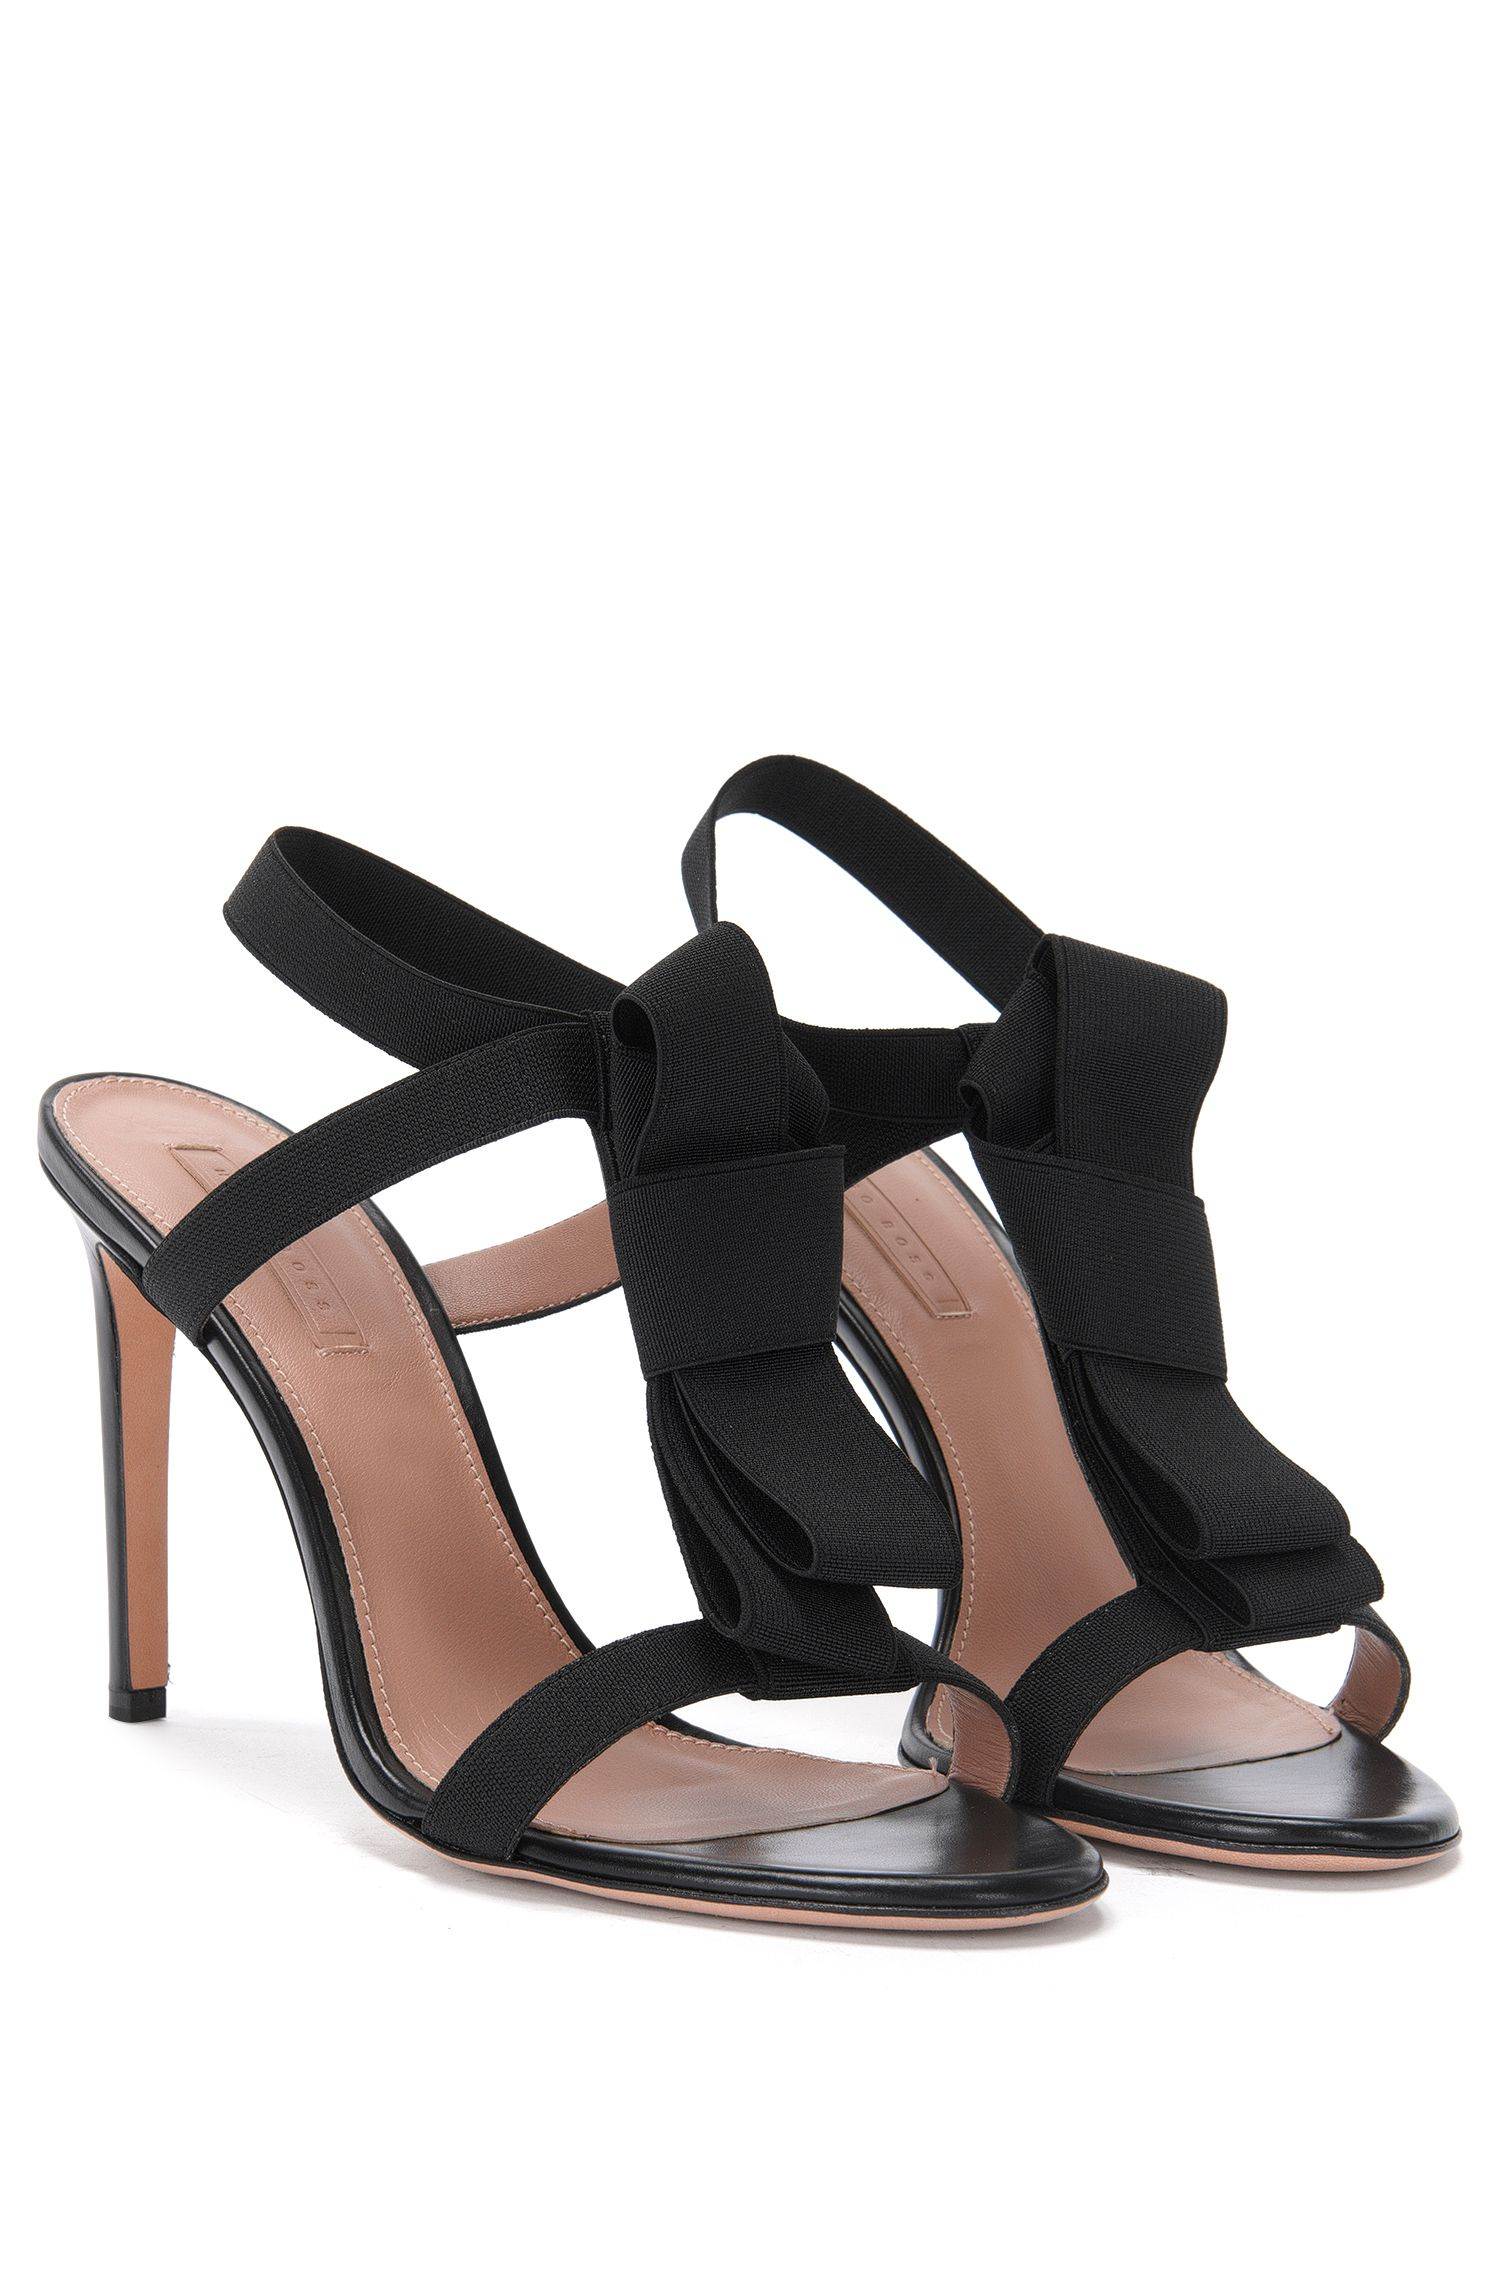 'Bow Tie Sandal' | Stretch Bow Tie Leather Sandal